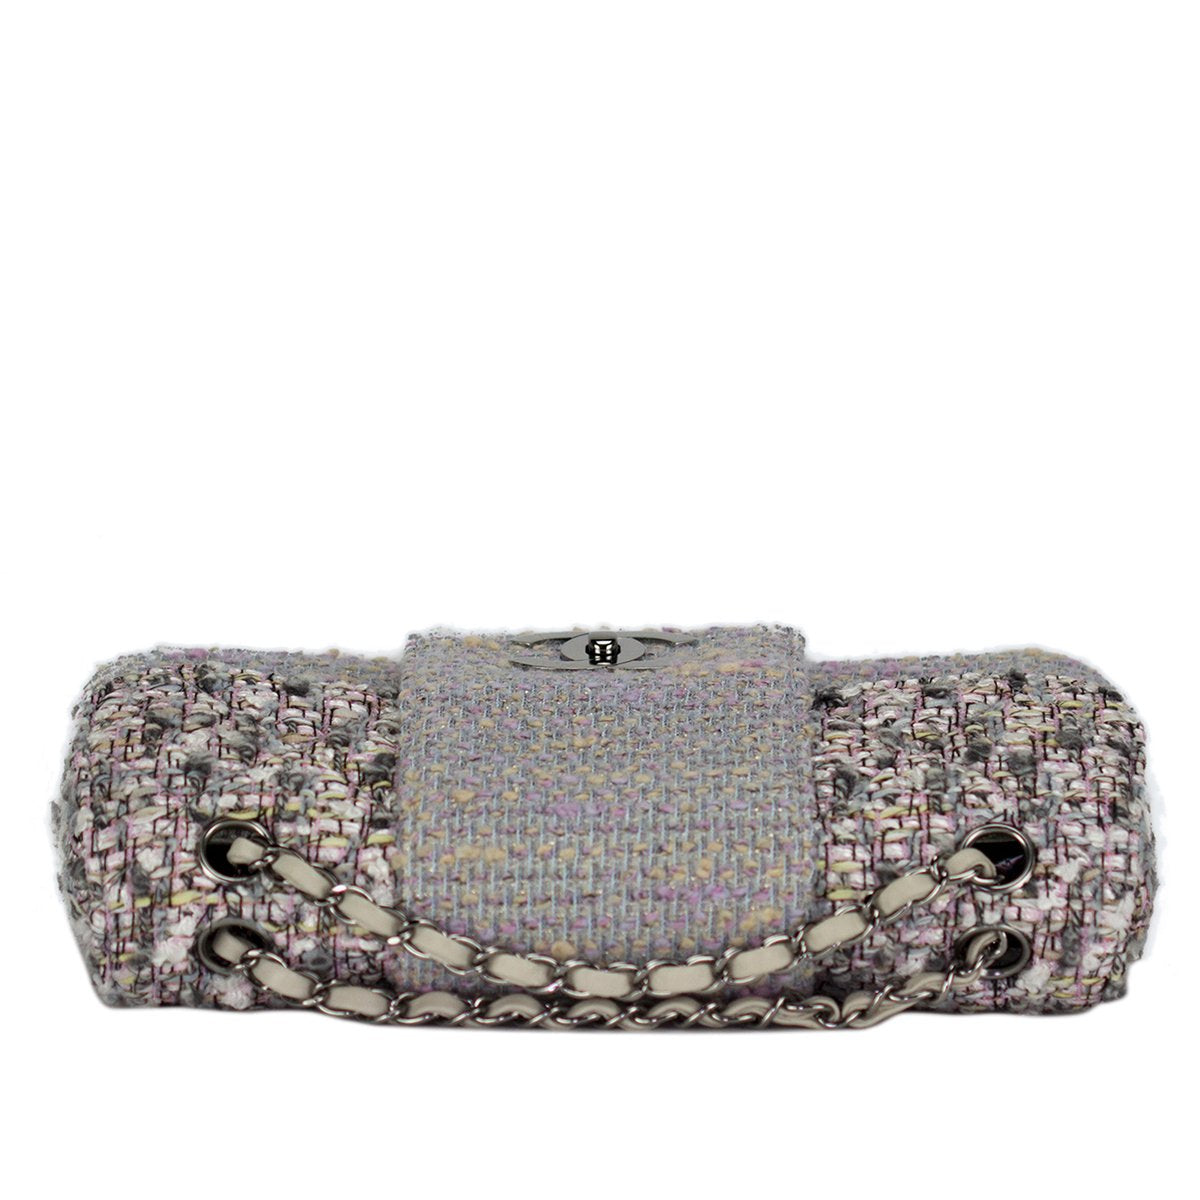 Chanel Grey Periwinkle Confetti Classic Tweed Flap